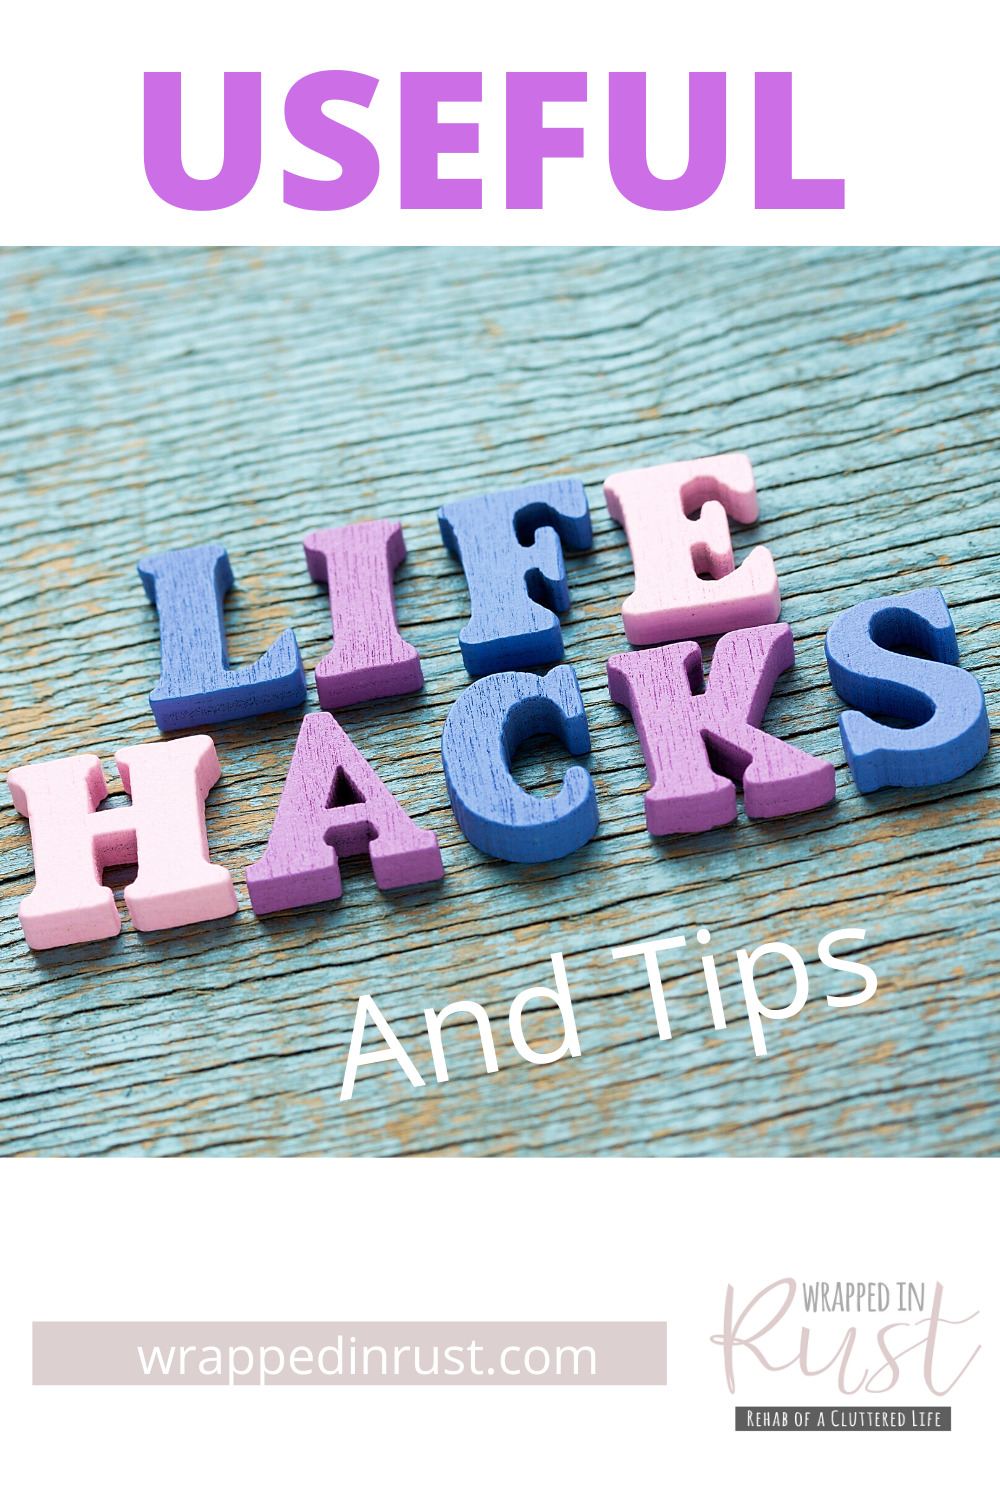 Life can be a challenge. Just knowing a few hacks can make such a difference while making life so much easier. Read this post for 25 useful life hacks. #usefultips #lifehacks #wrappedinrustblog